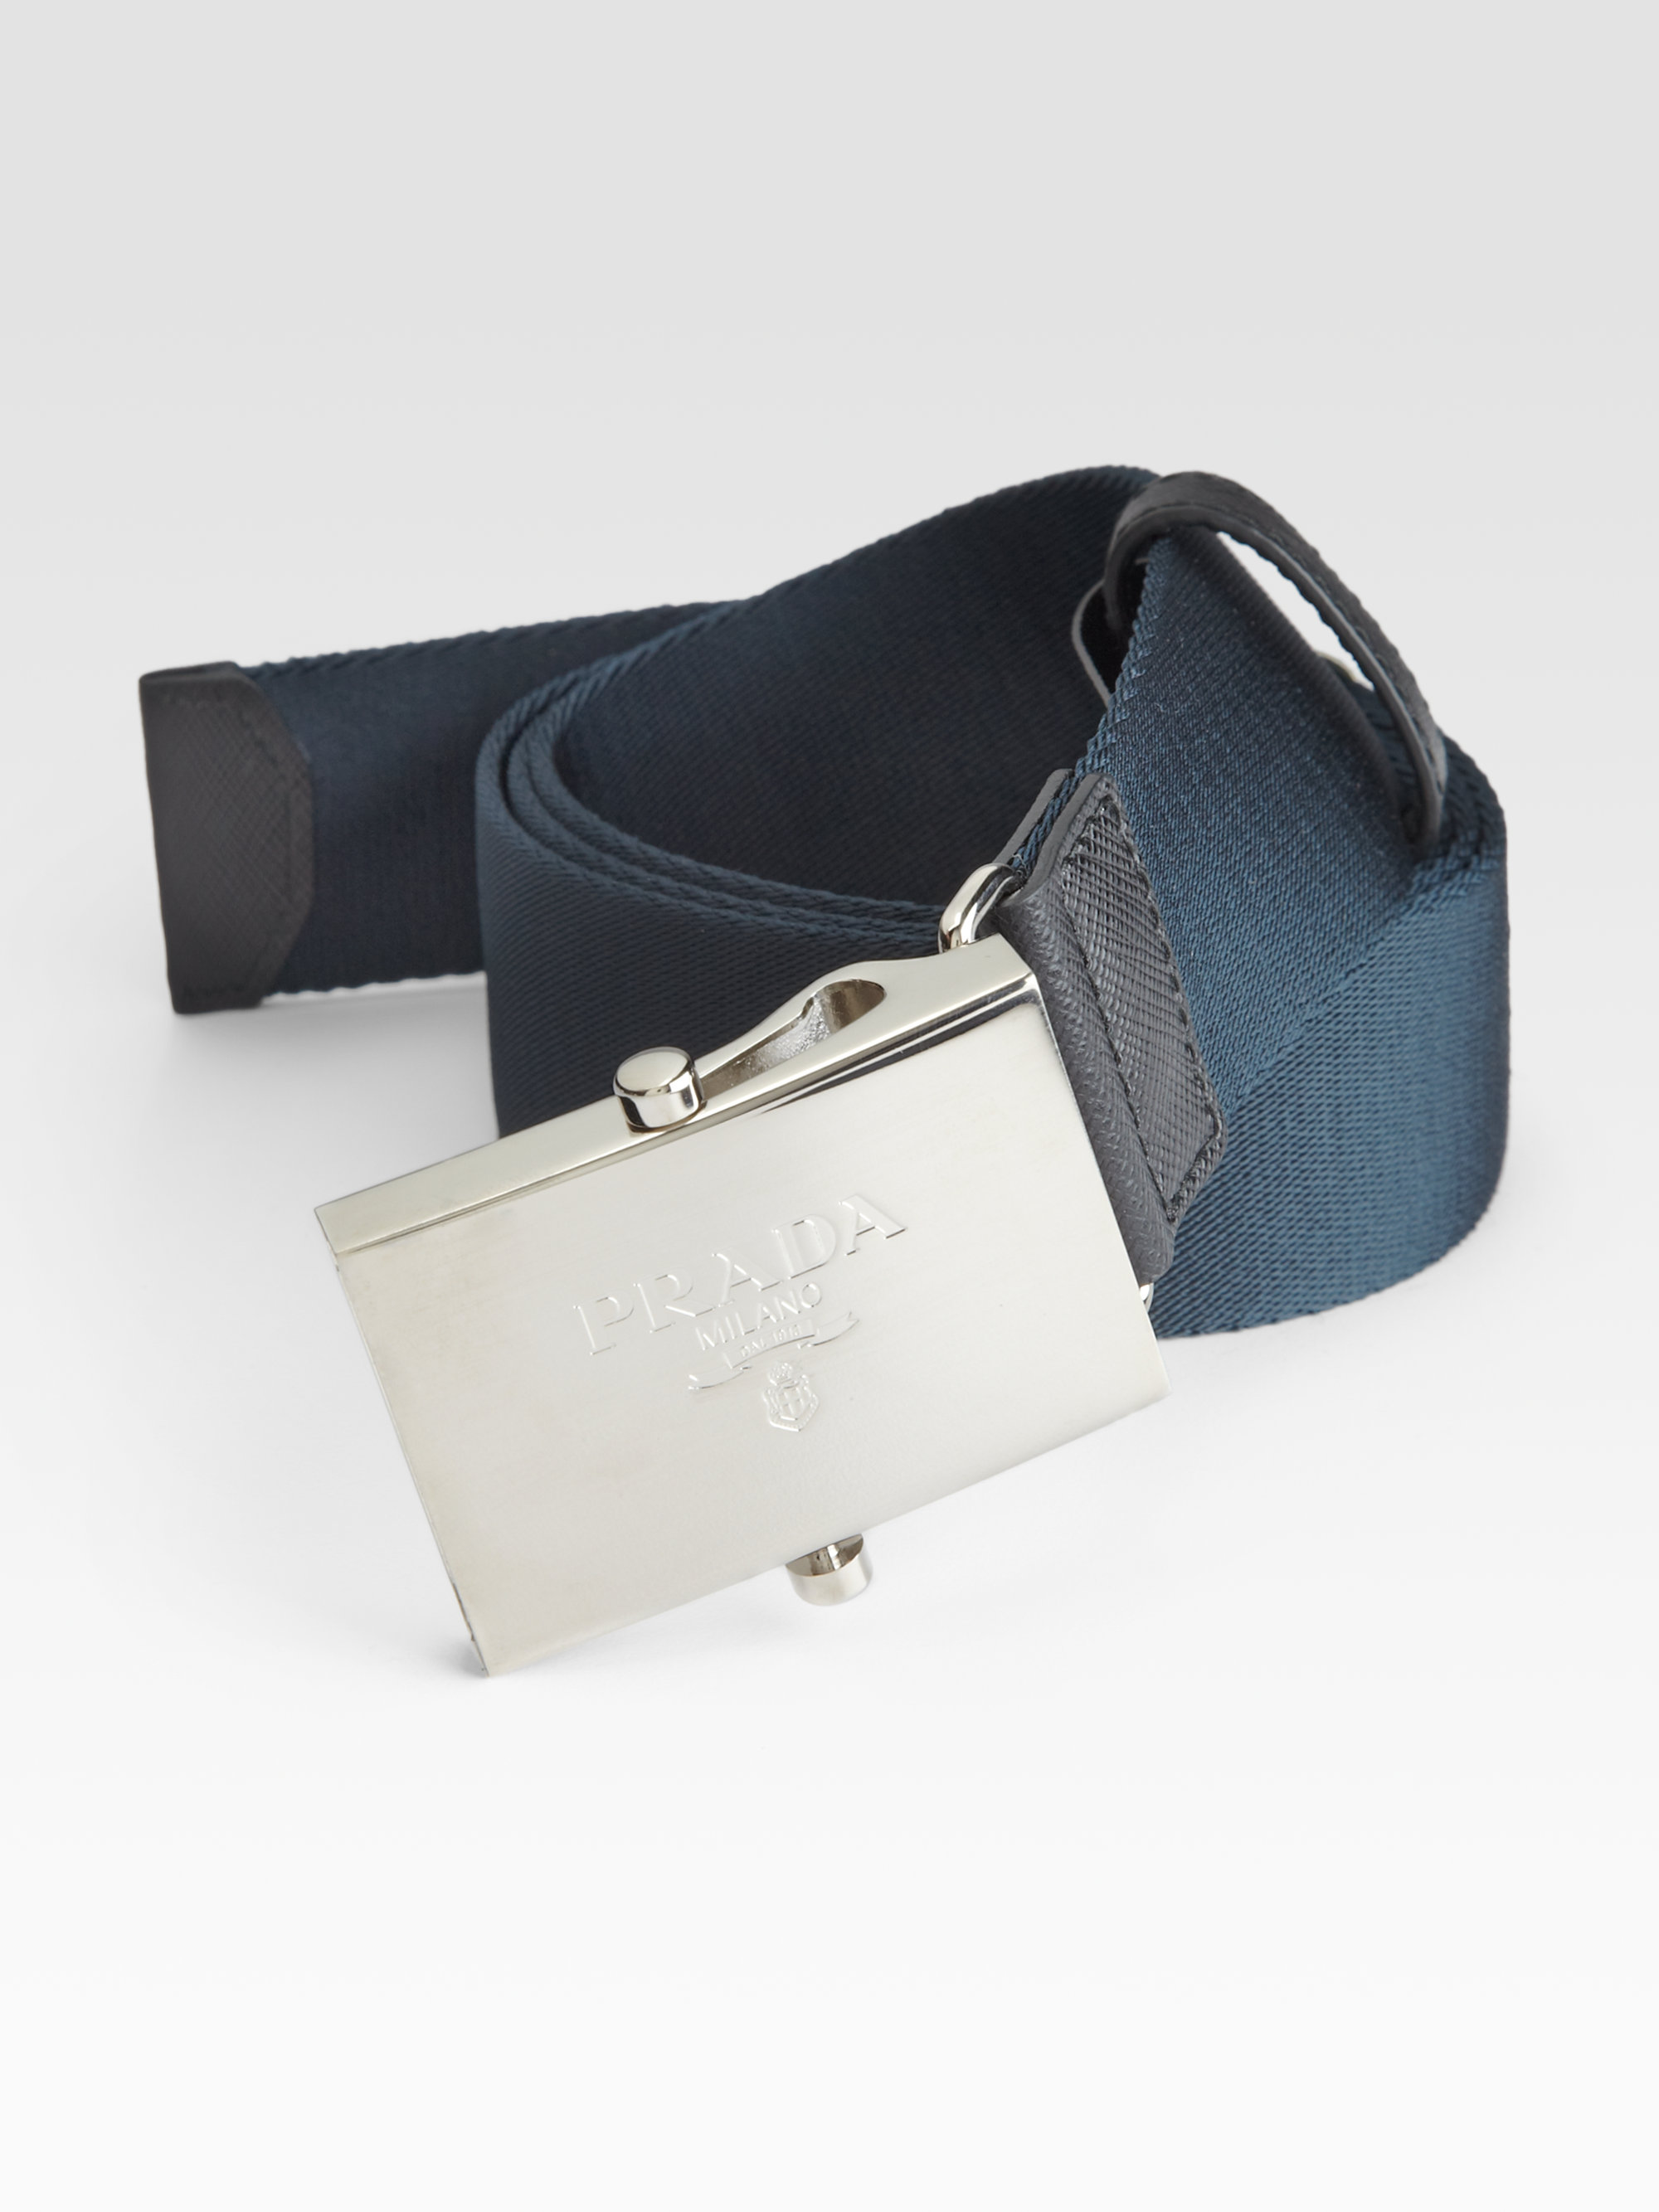 c573fbbbf3ed7 ... usa lyst prada nylon belt in blue for men d7d76 cca5a